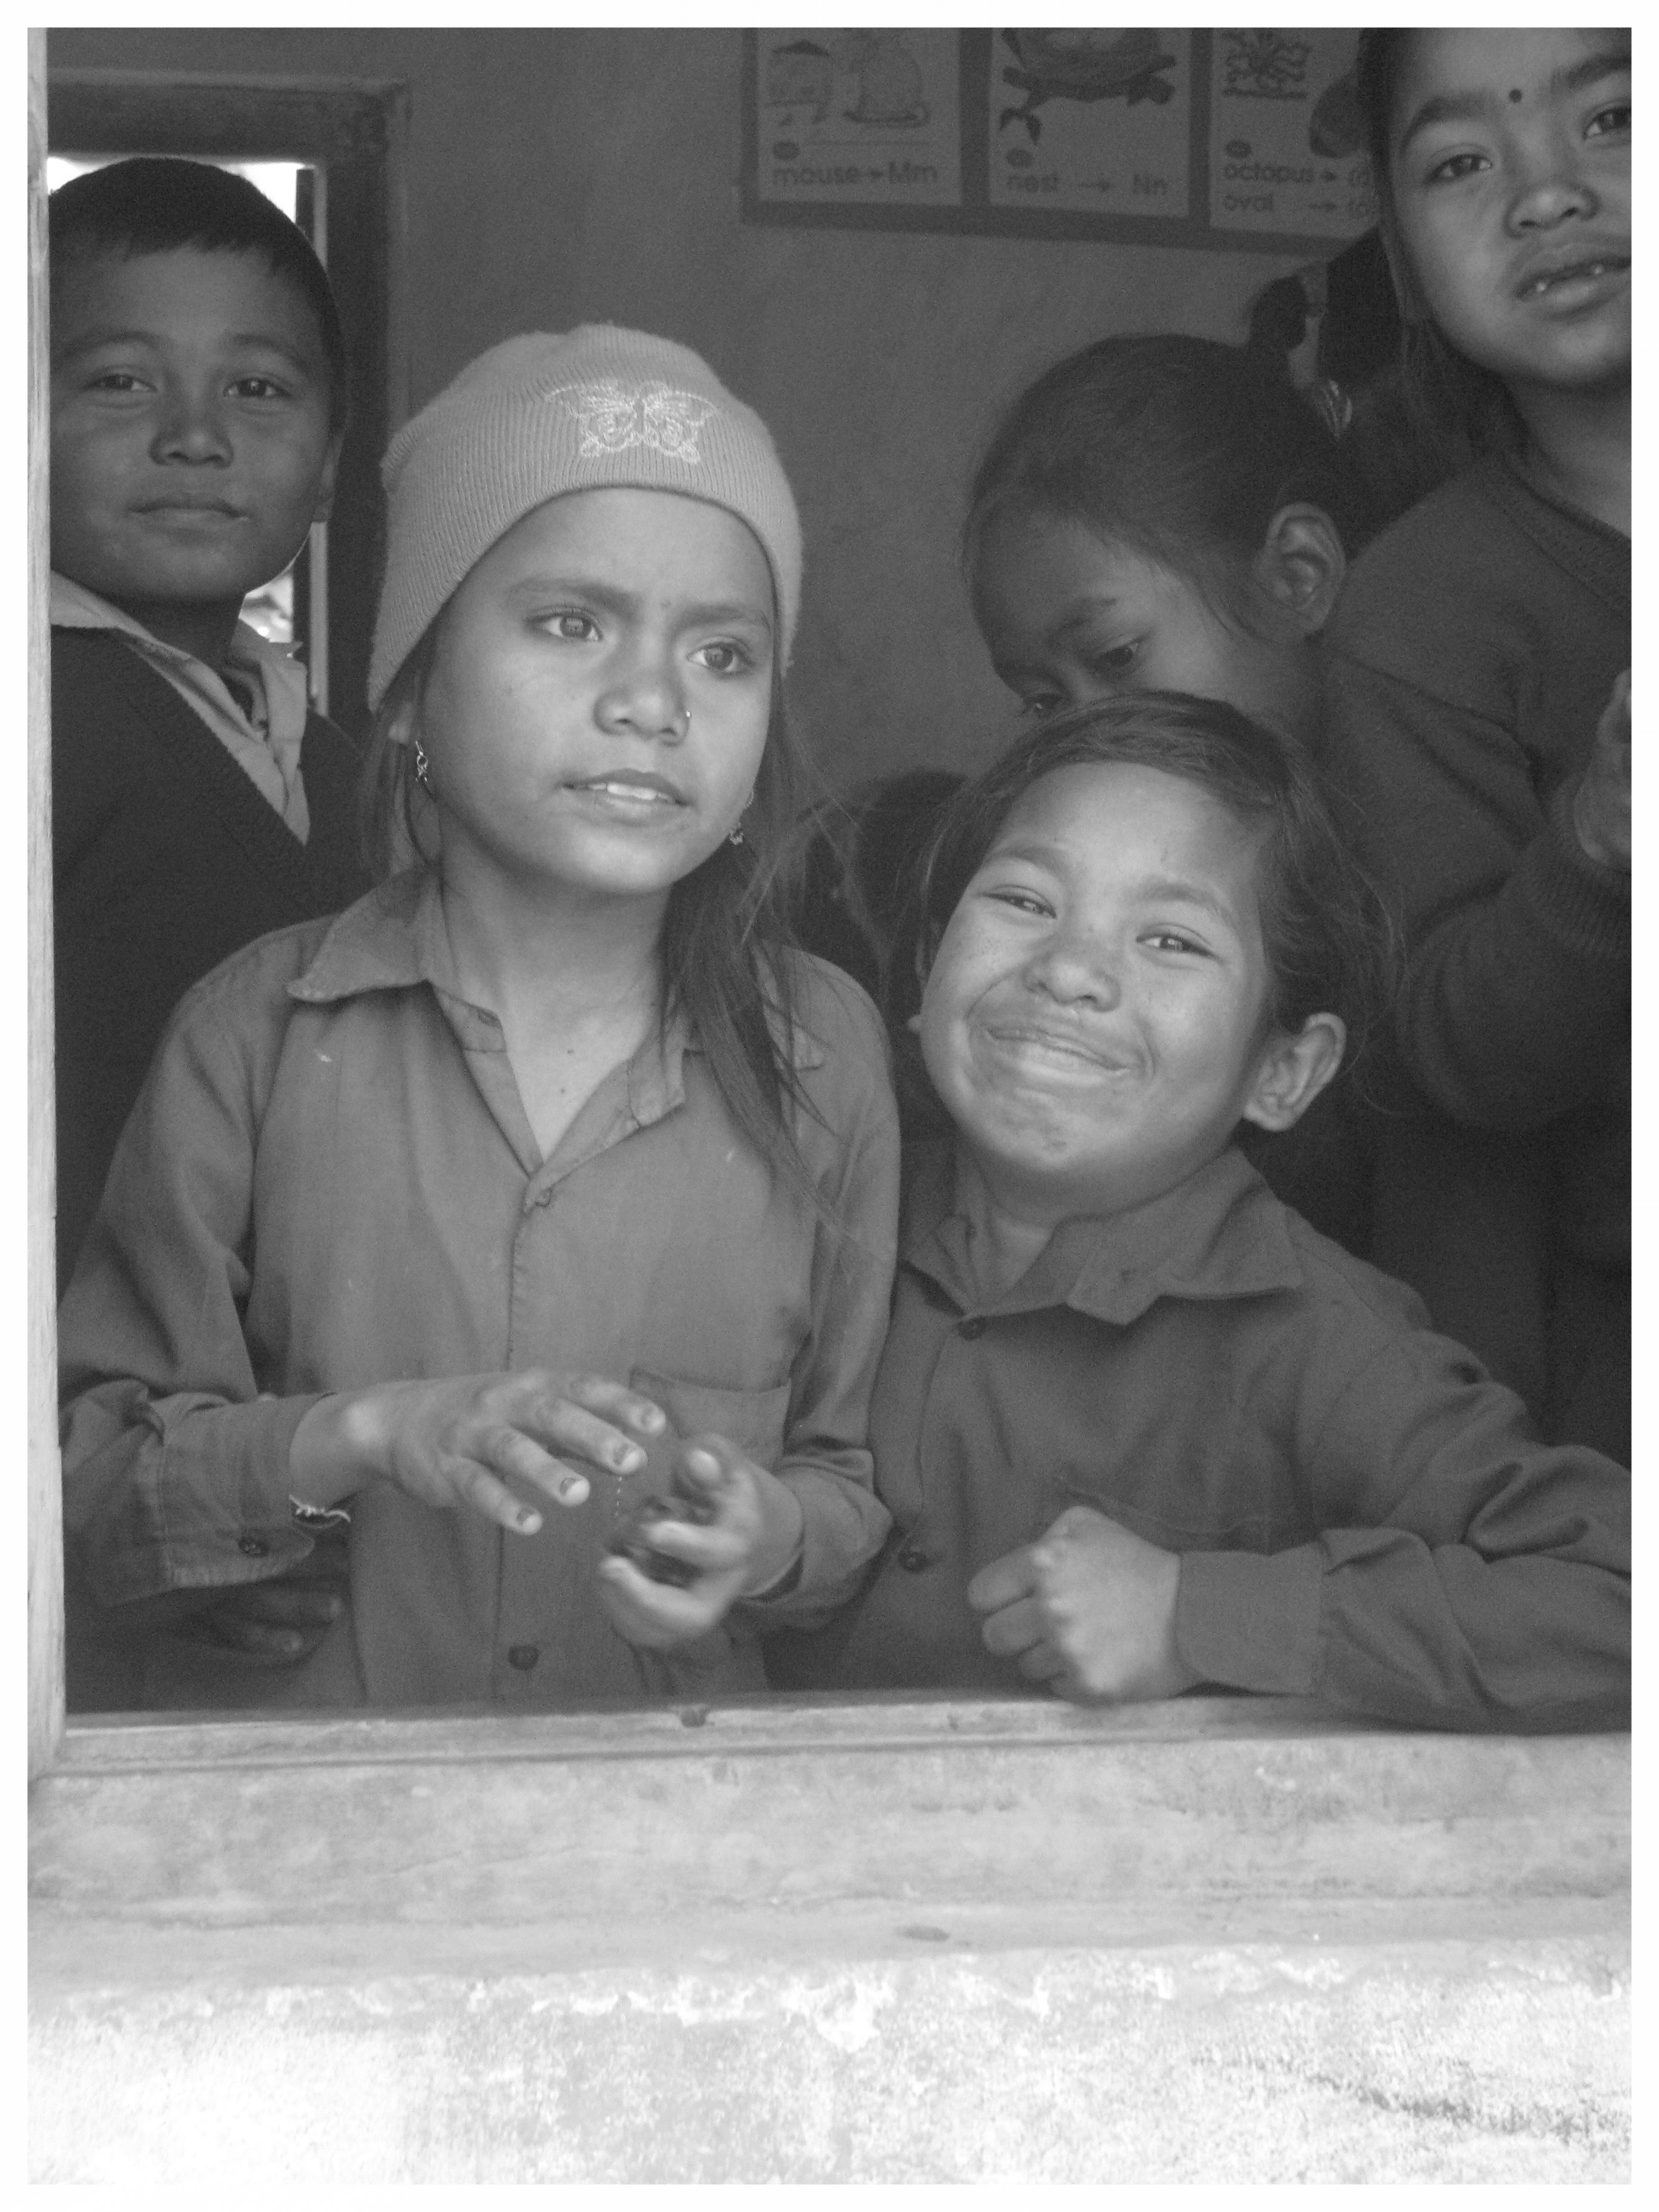 This image was taken at PremNagar school in Nepal. Families in this region were released from bonded slavery in the early 2000's.